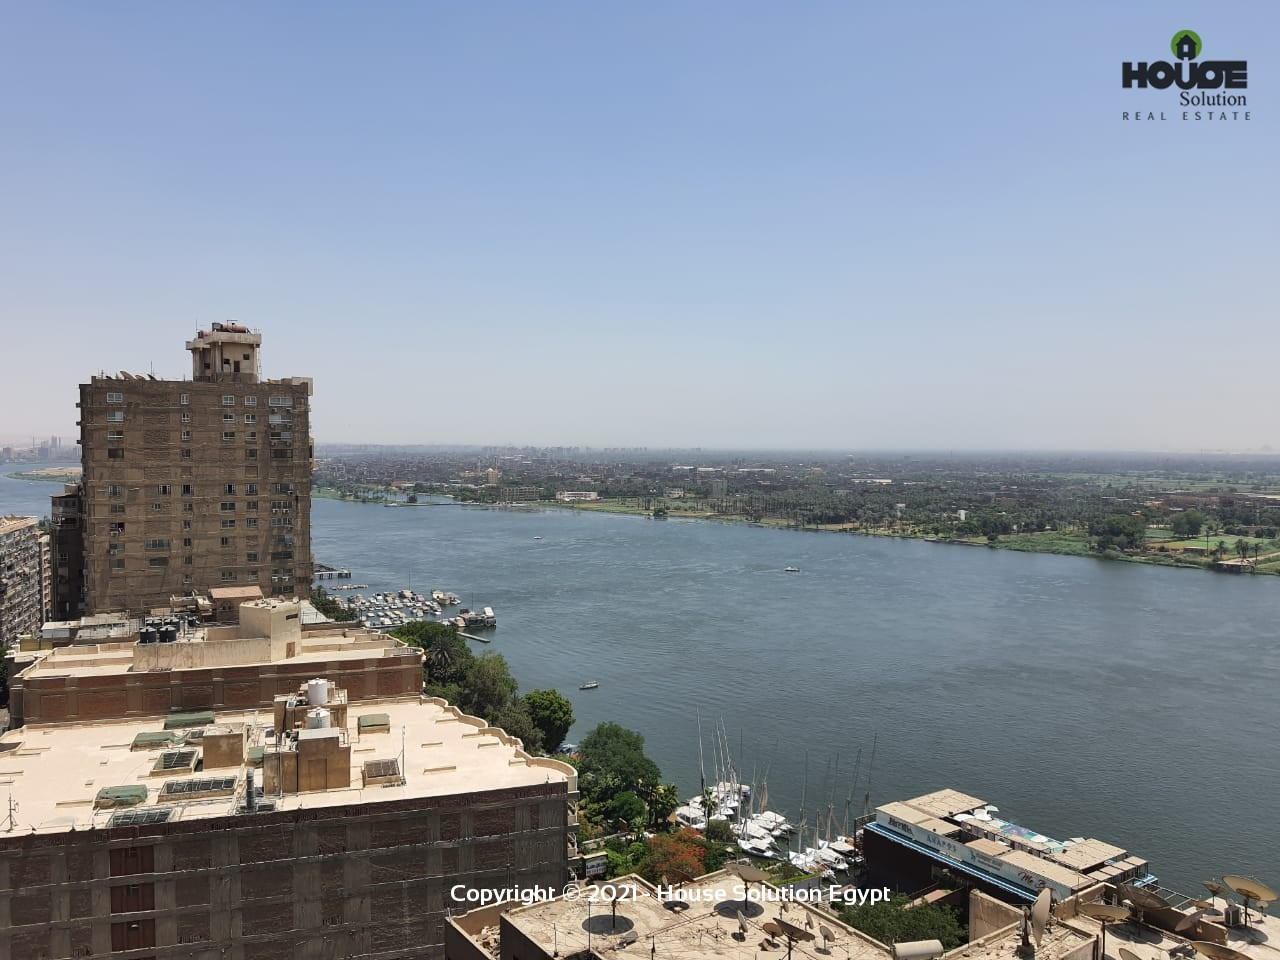 Furnished Apartment With Amazing View Of The Nile For Rent Located In Maadi Cairo Egypt - 5004 Featured Image